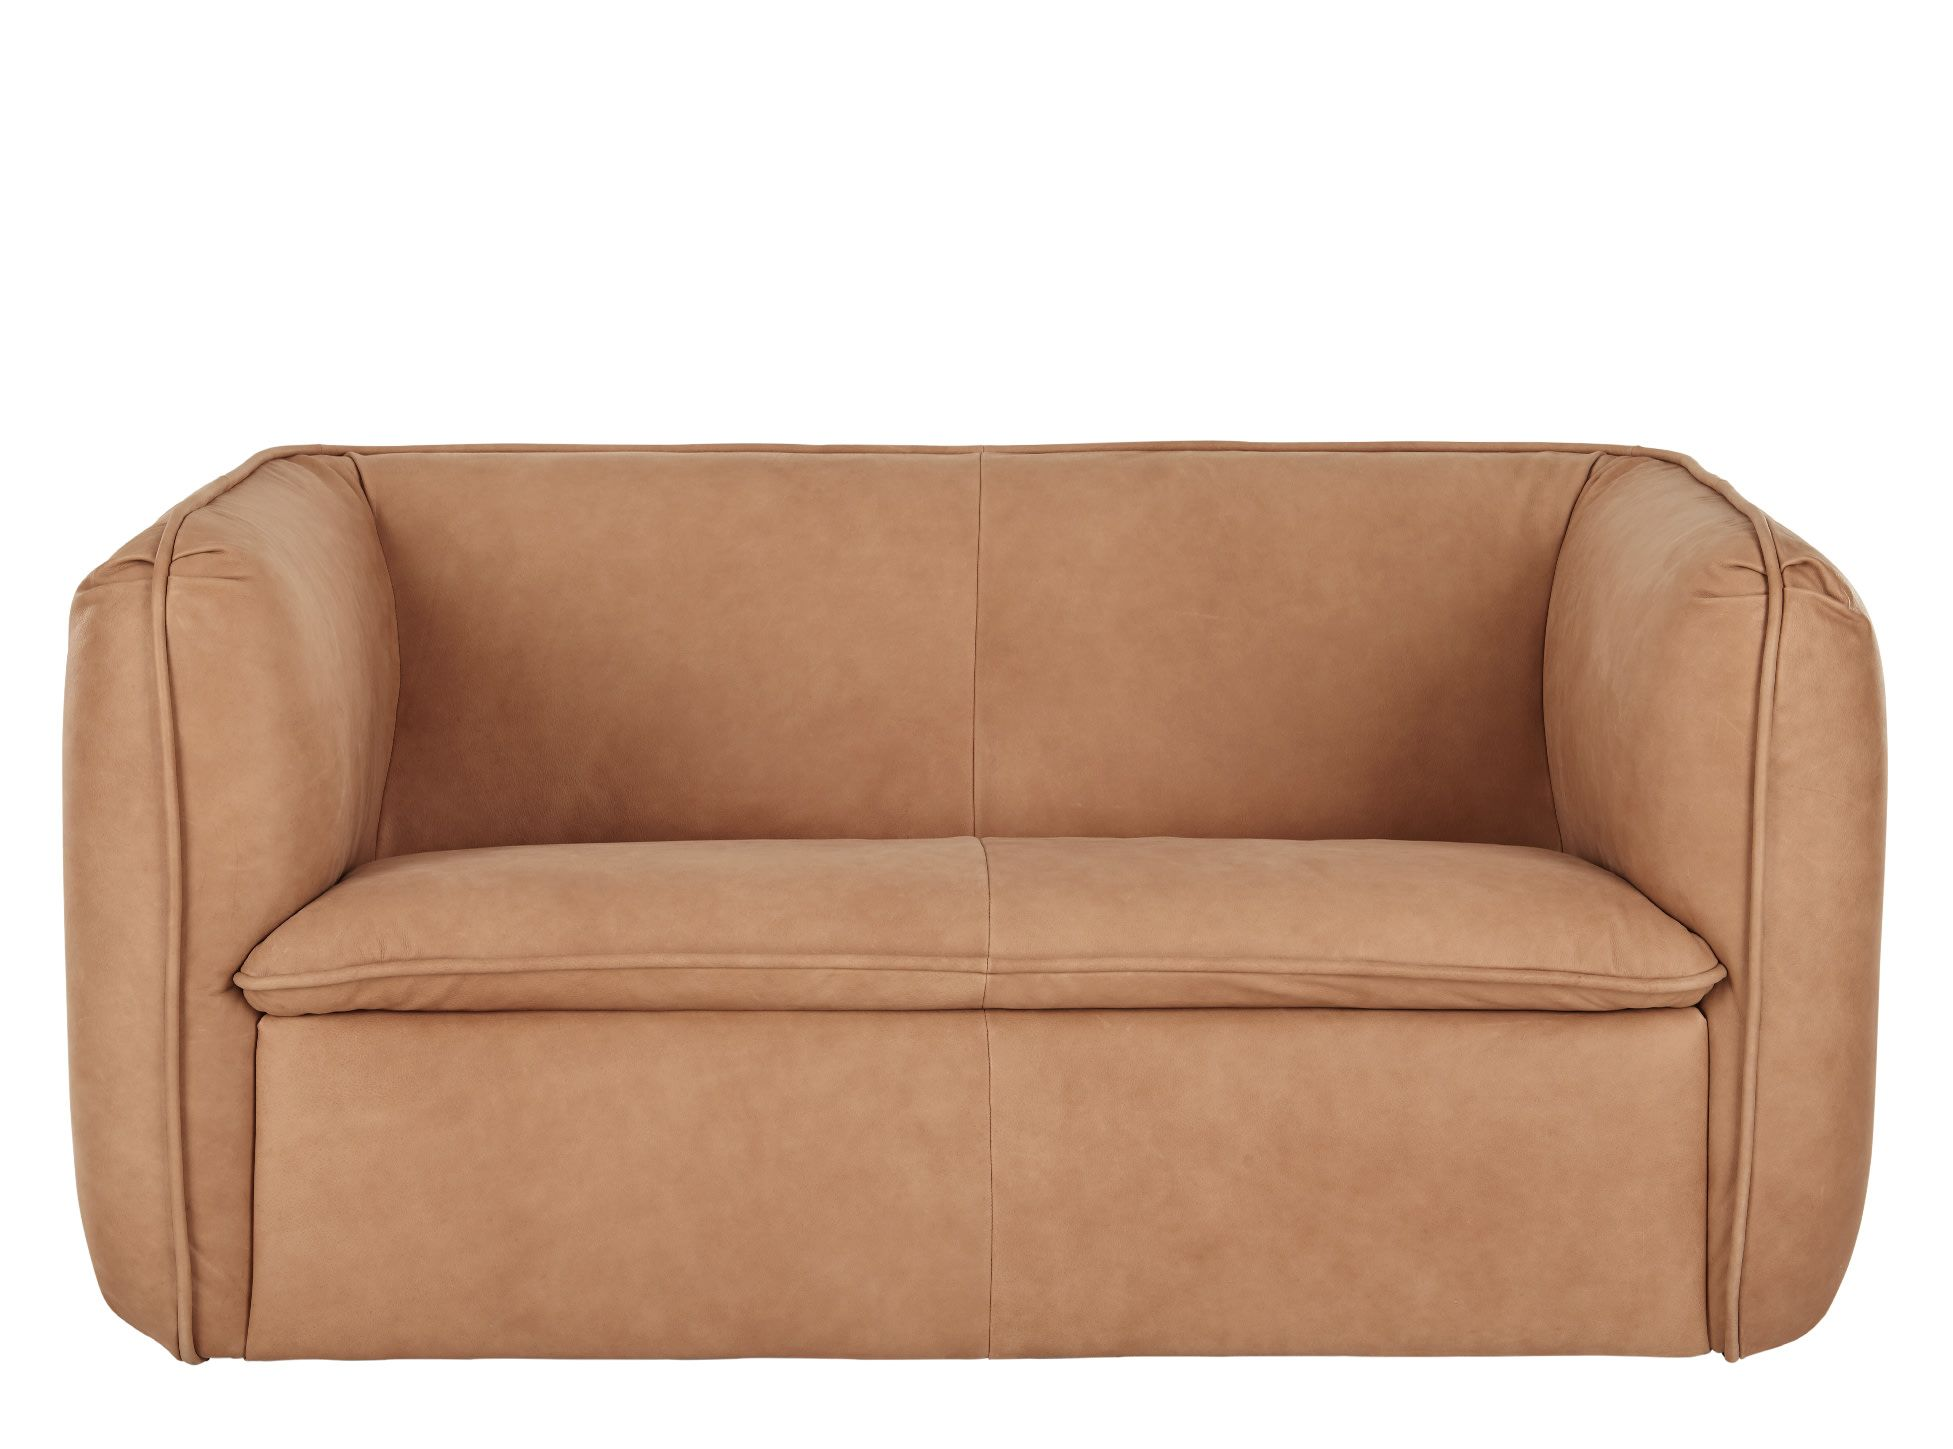 Berko 2 Seater Sofa Tan Leather 2 Seater Sofa Seater Sofa Sofa